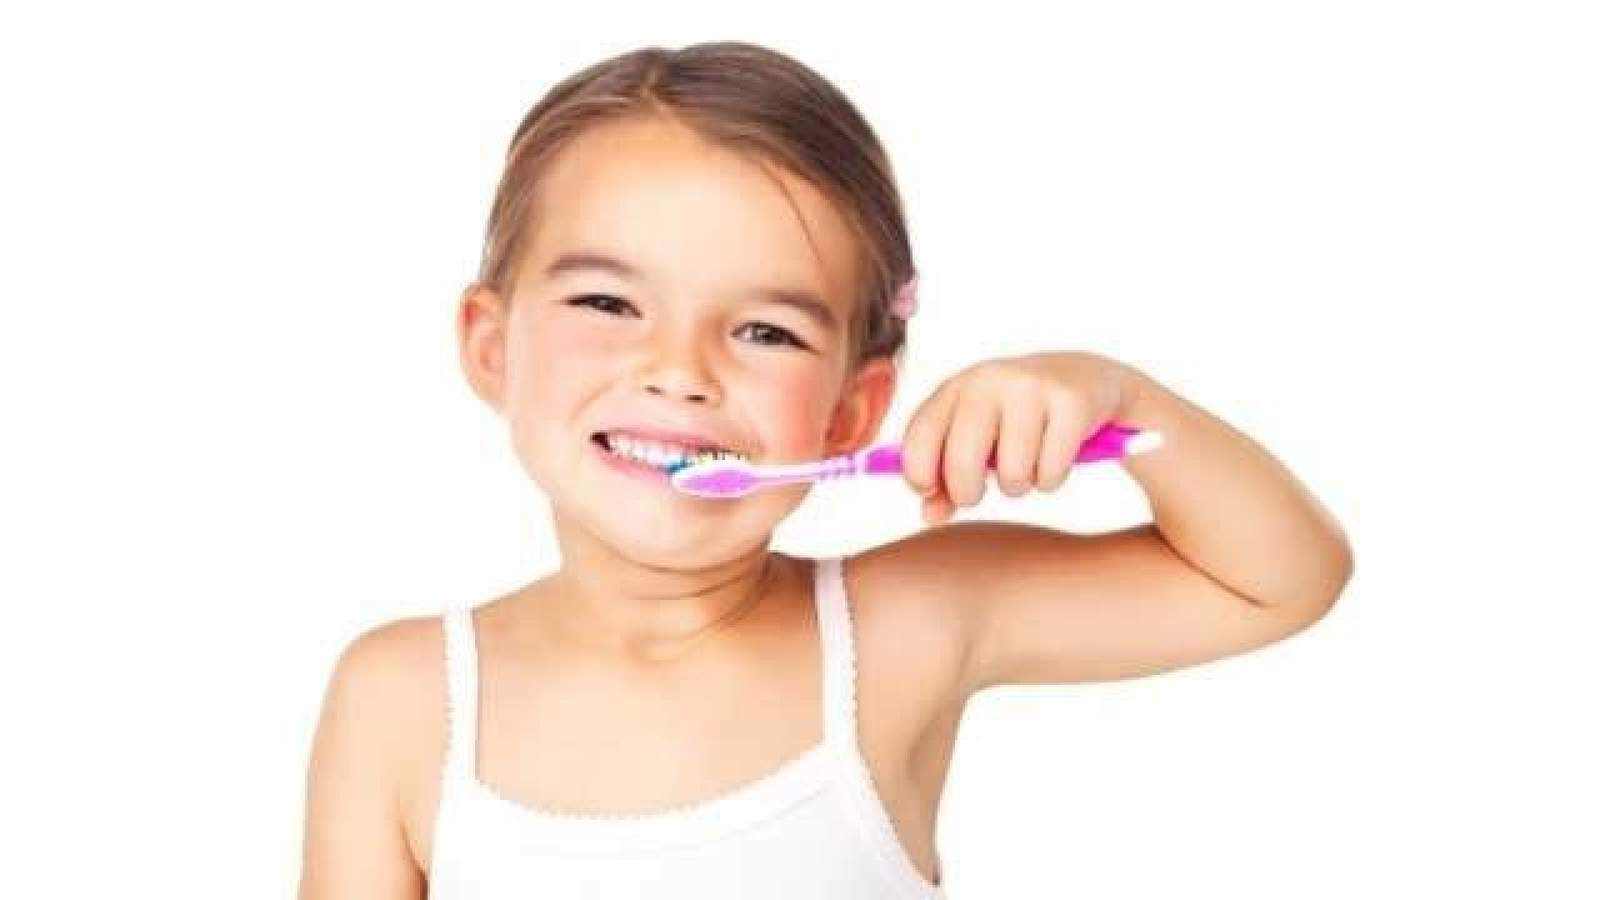 Am I doing this right? Common mistakes people make while brushing their teeth